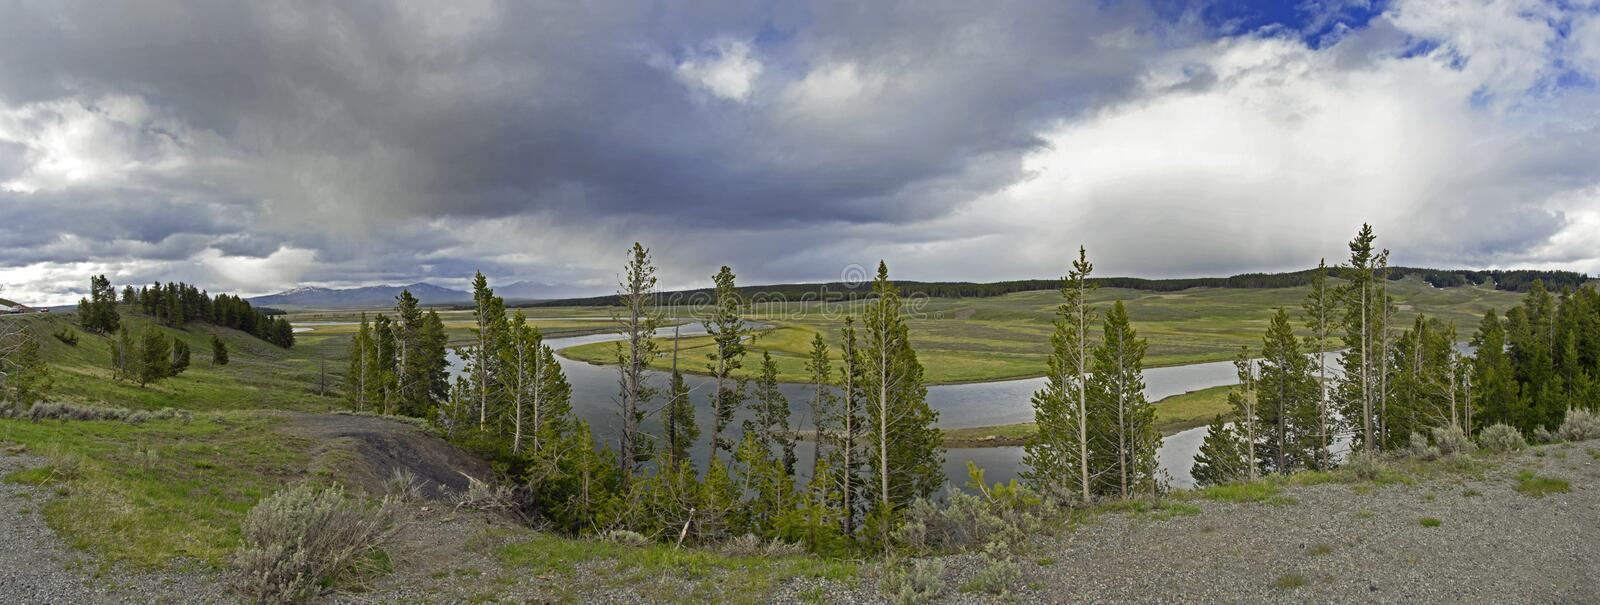 Snake Bend river in Grand Tetons National Park royalty free stock images